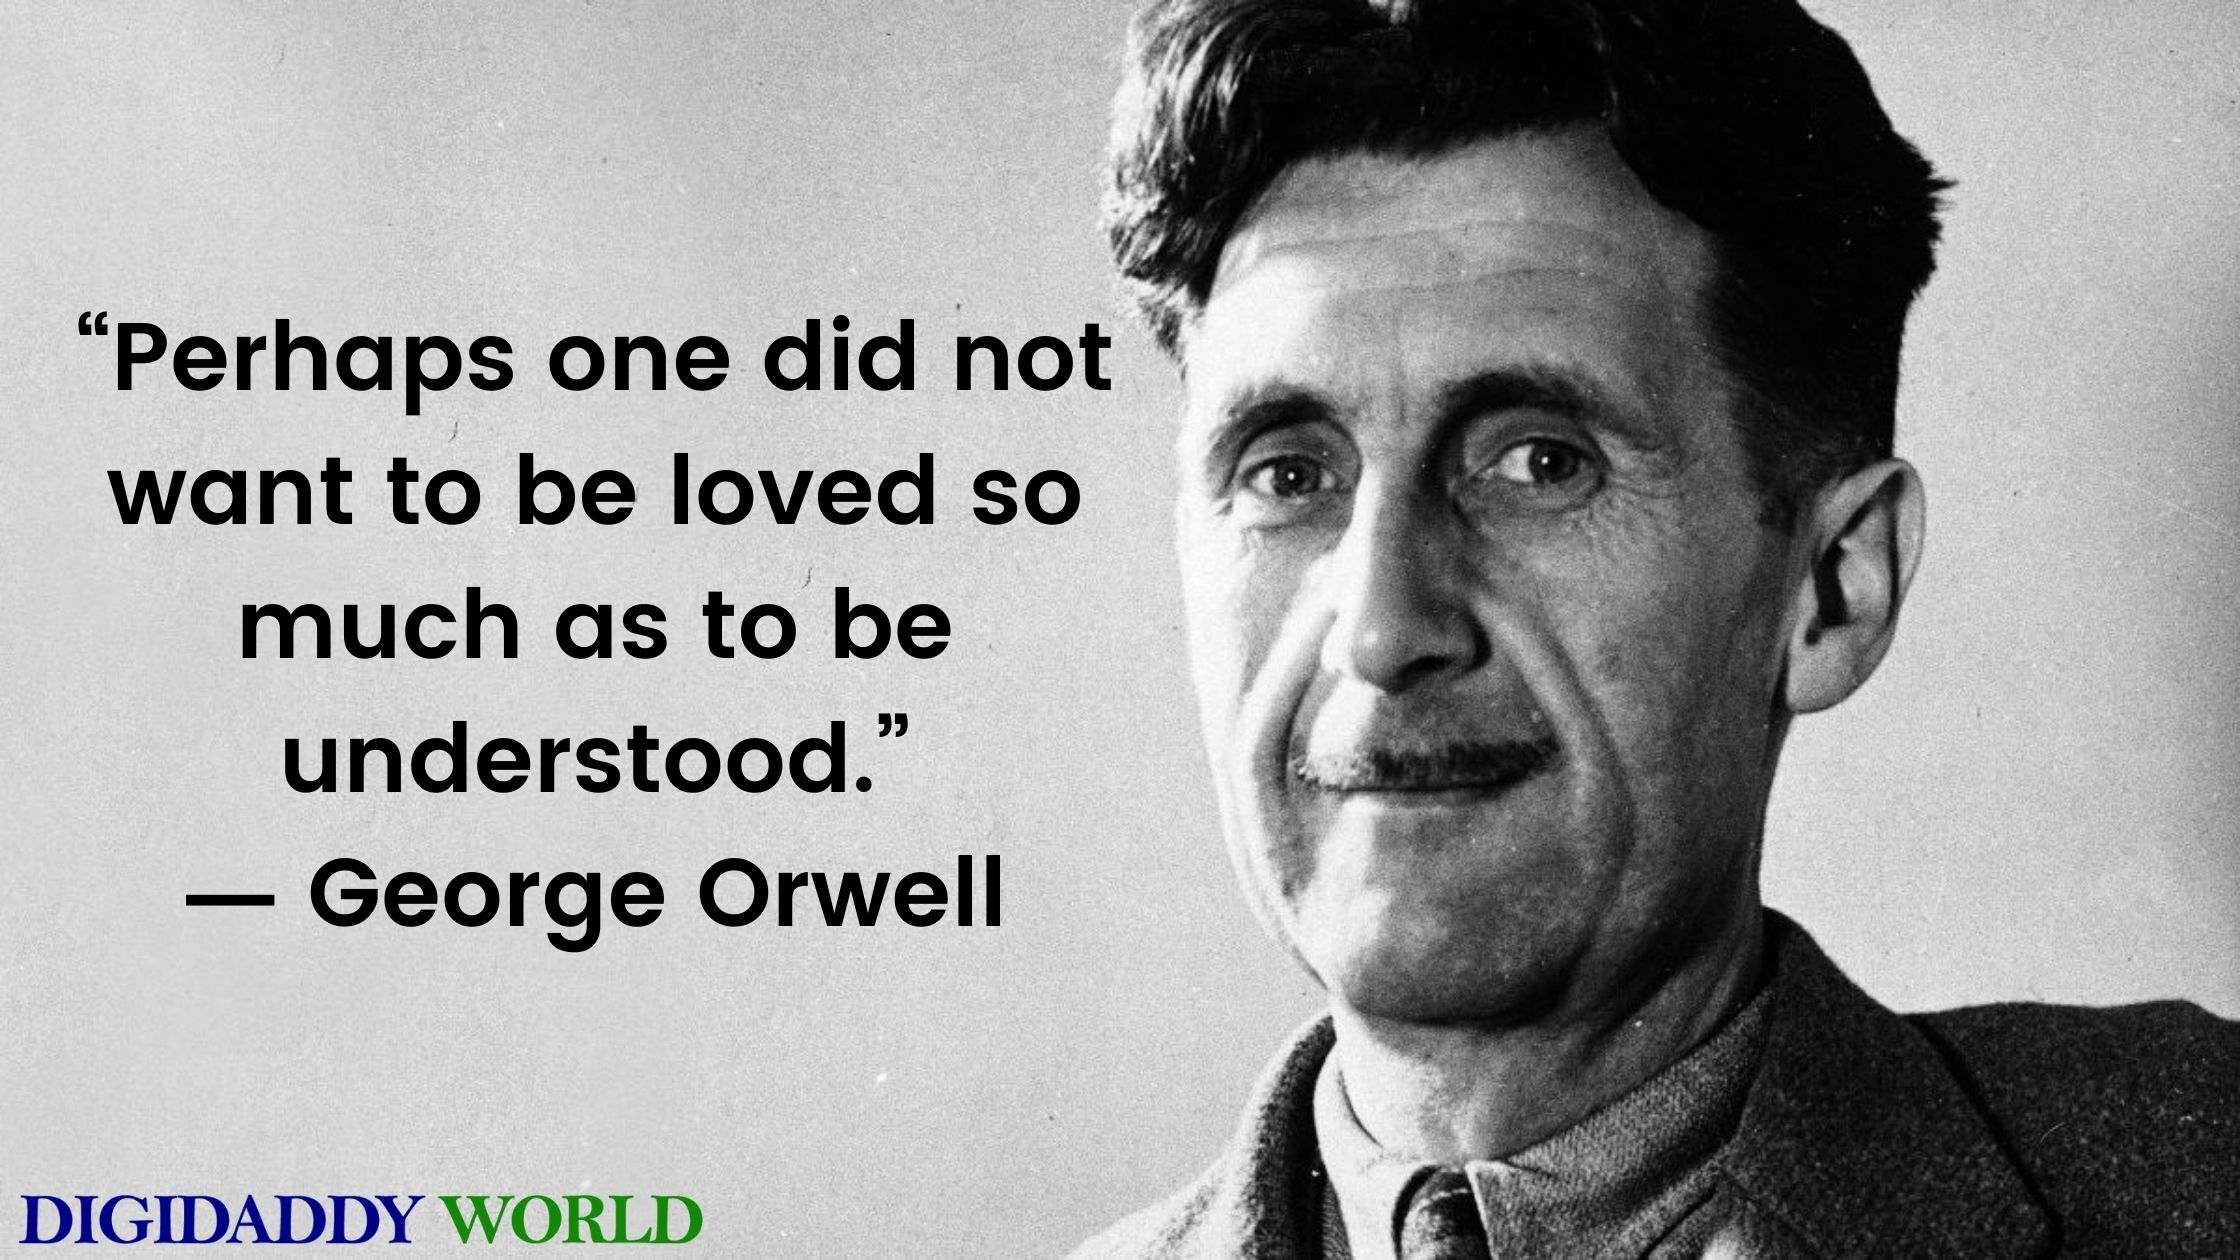 George Orwell 1984 Book Quotes